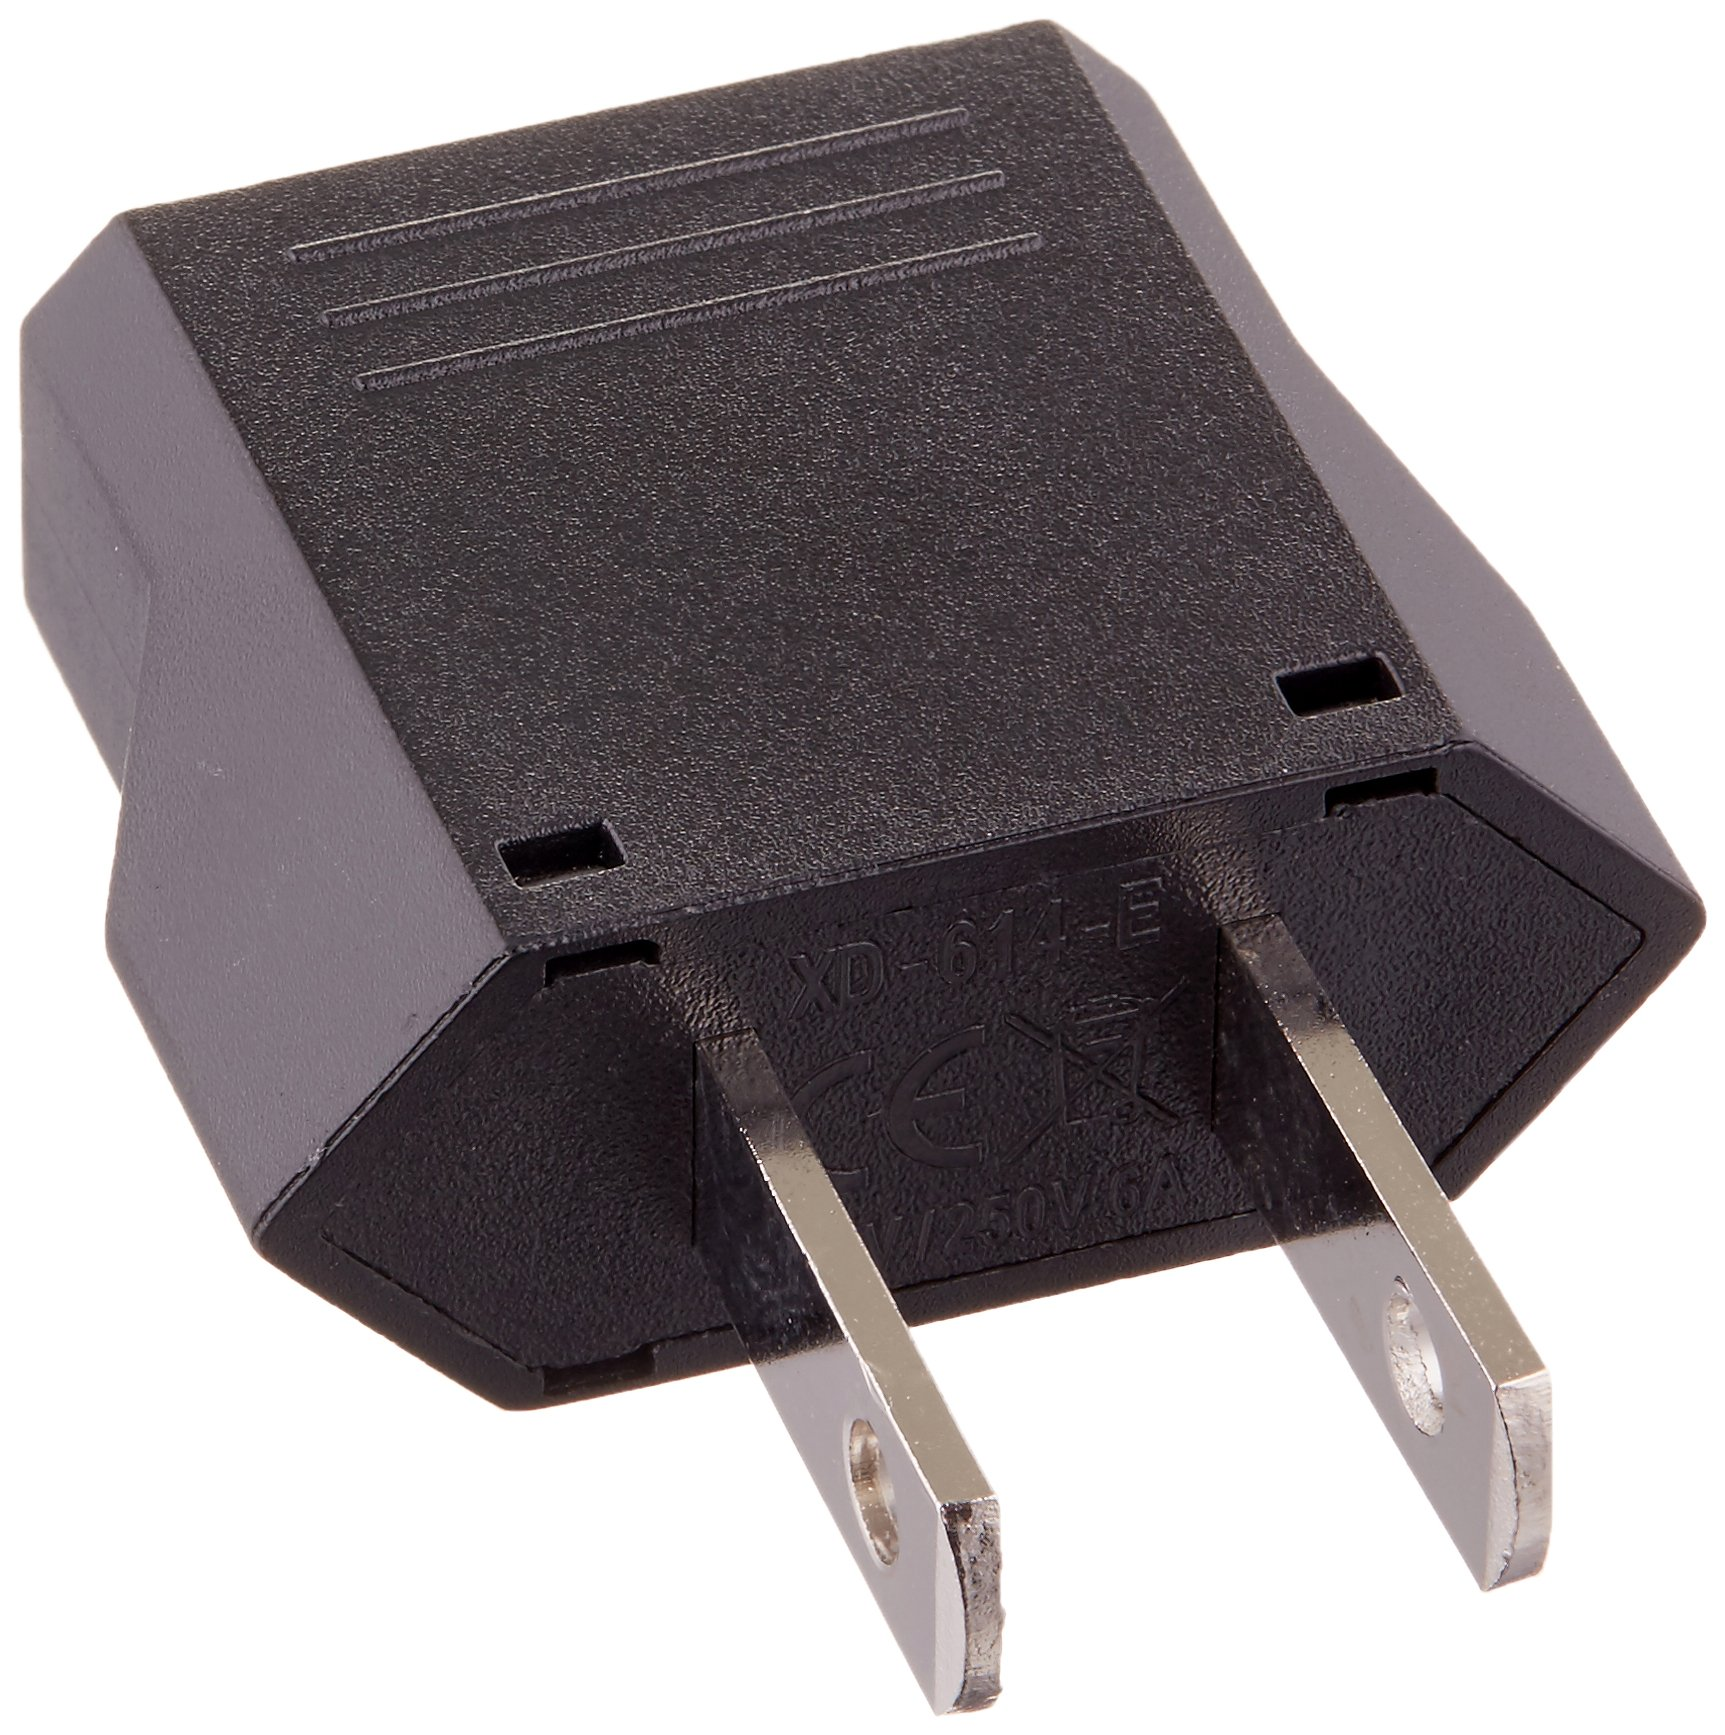 Ckitze 10-Flat European to American Outlet Plug Adapter - 10 Pack